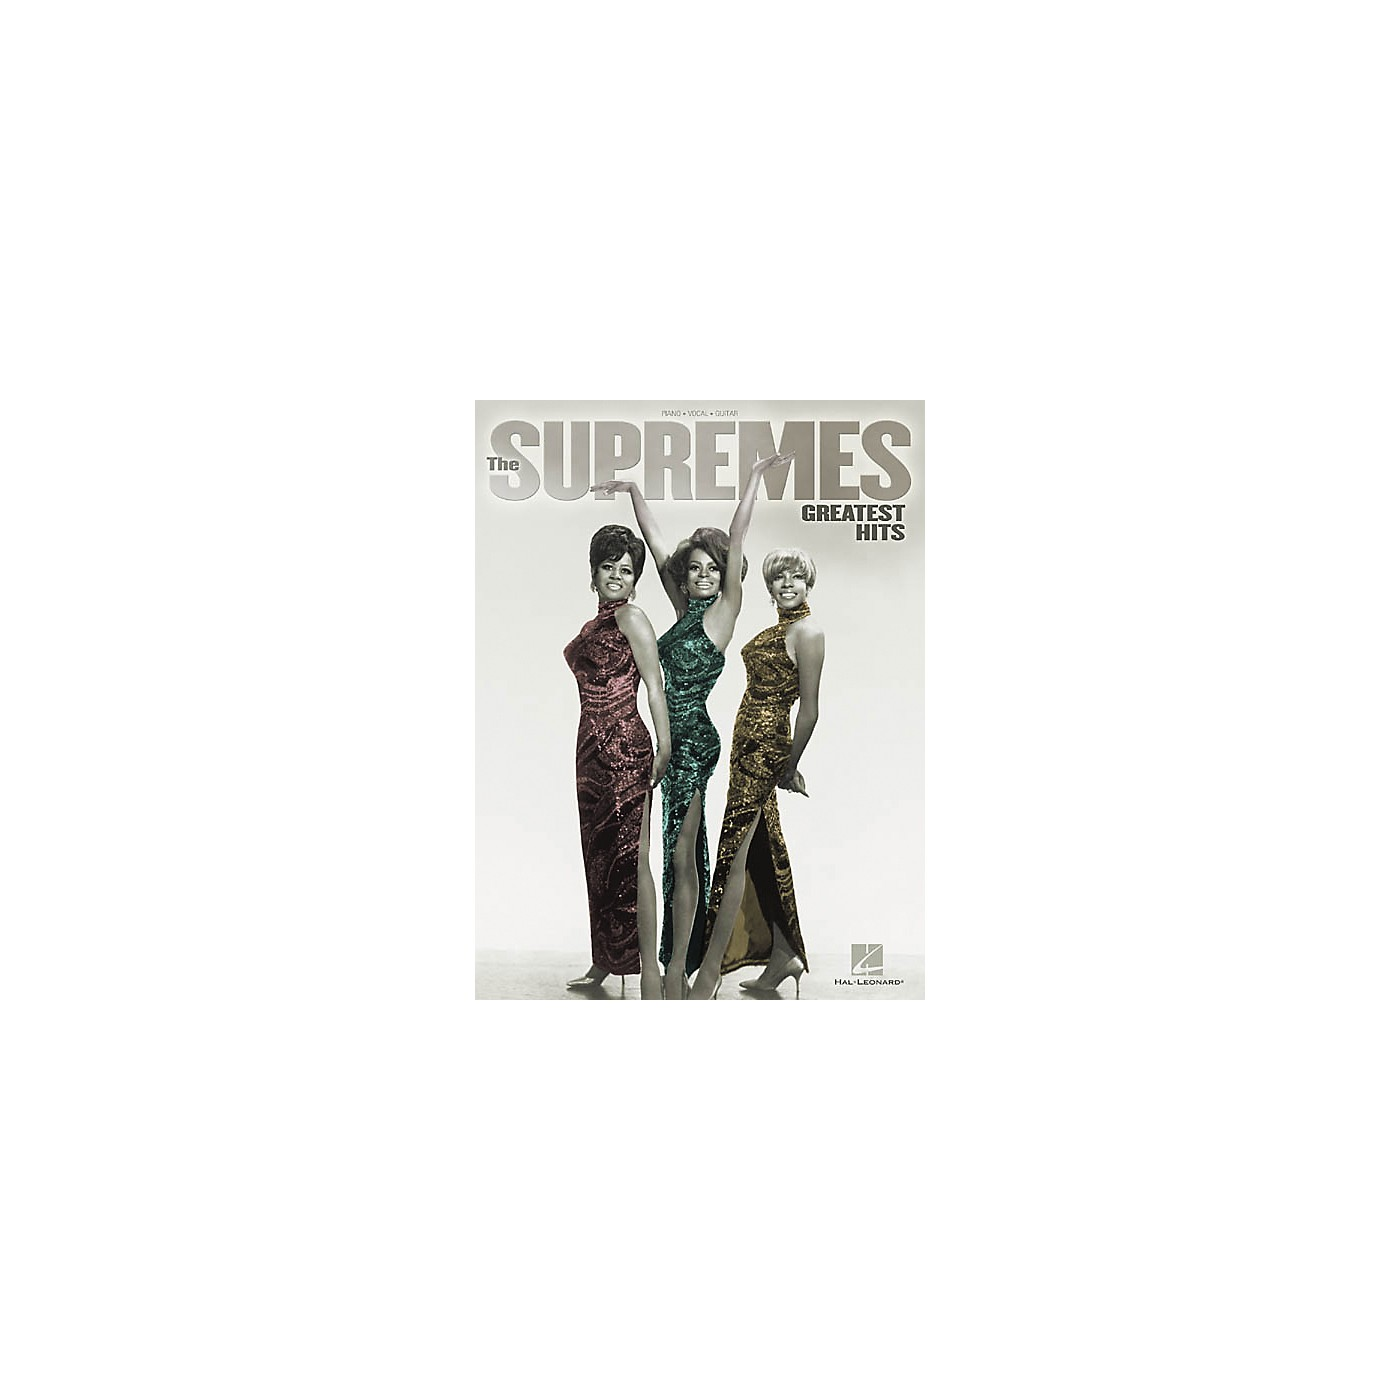 Hal Leonard The Supremes Greatest Hits Songbook thumbnail